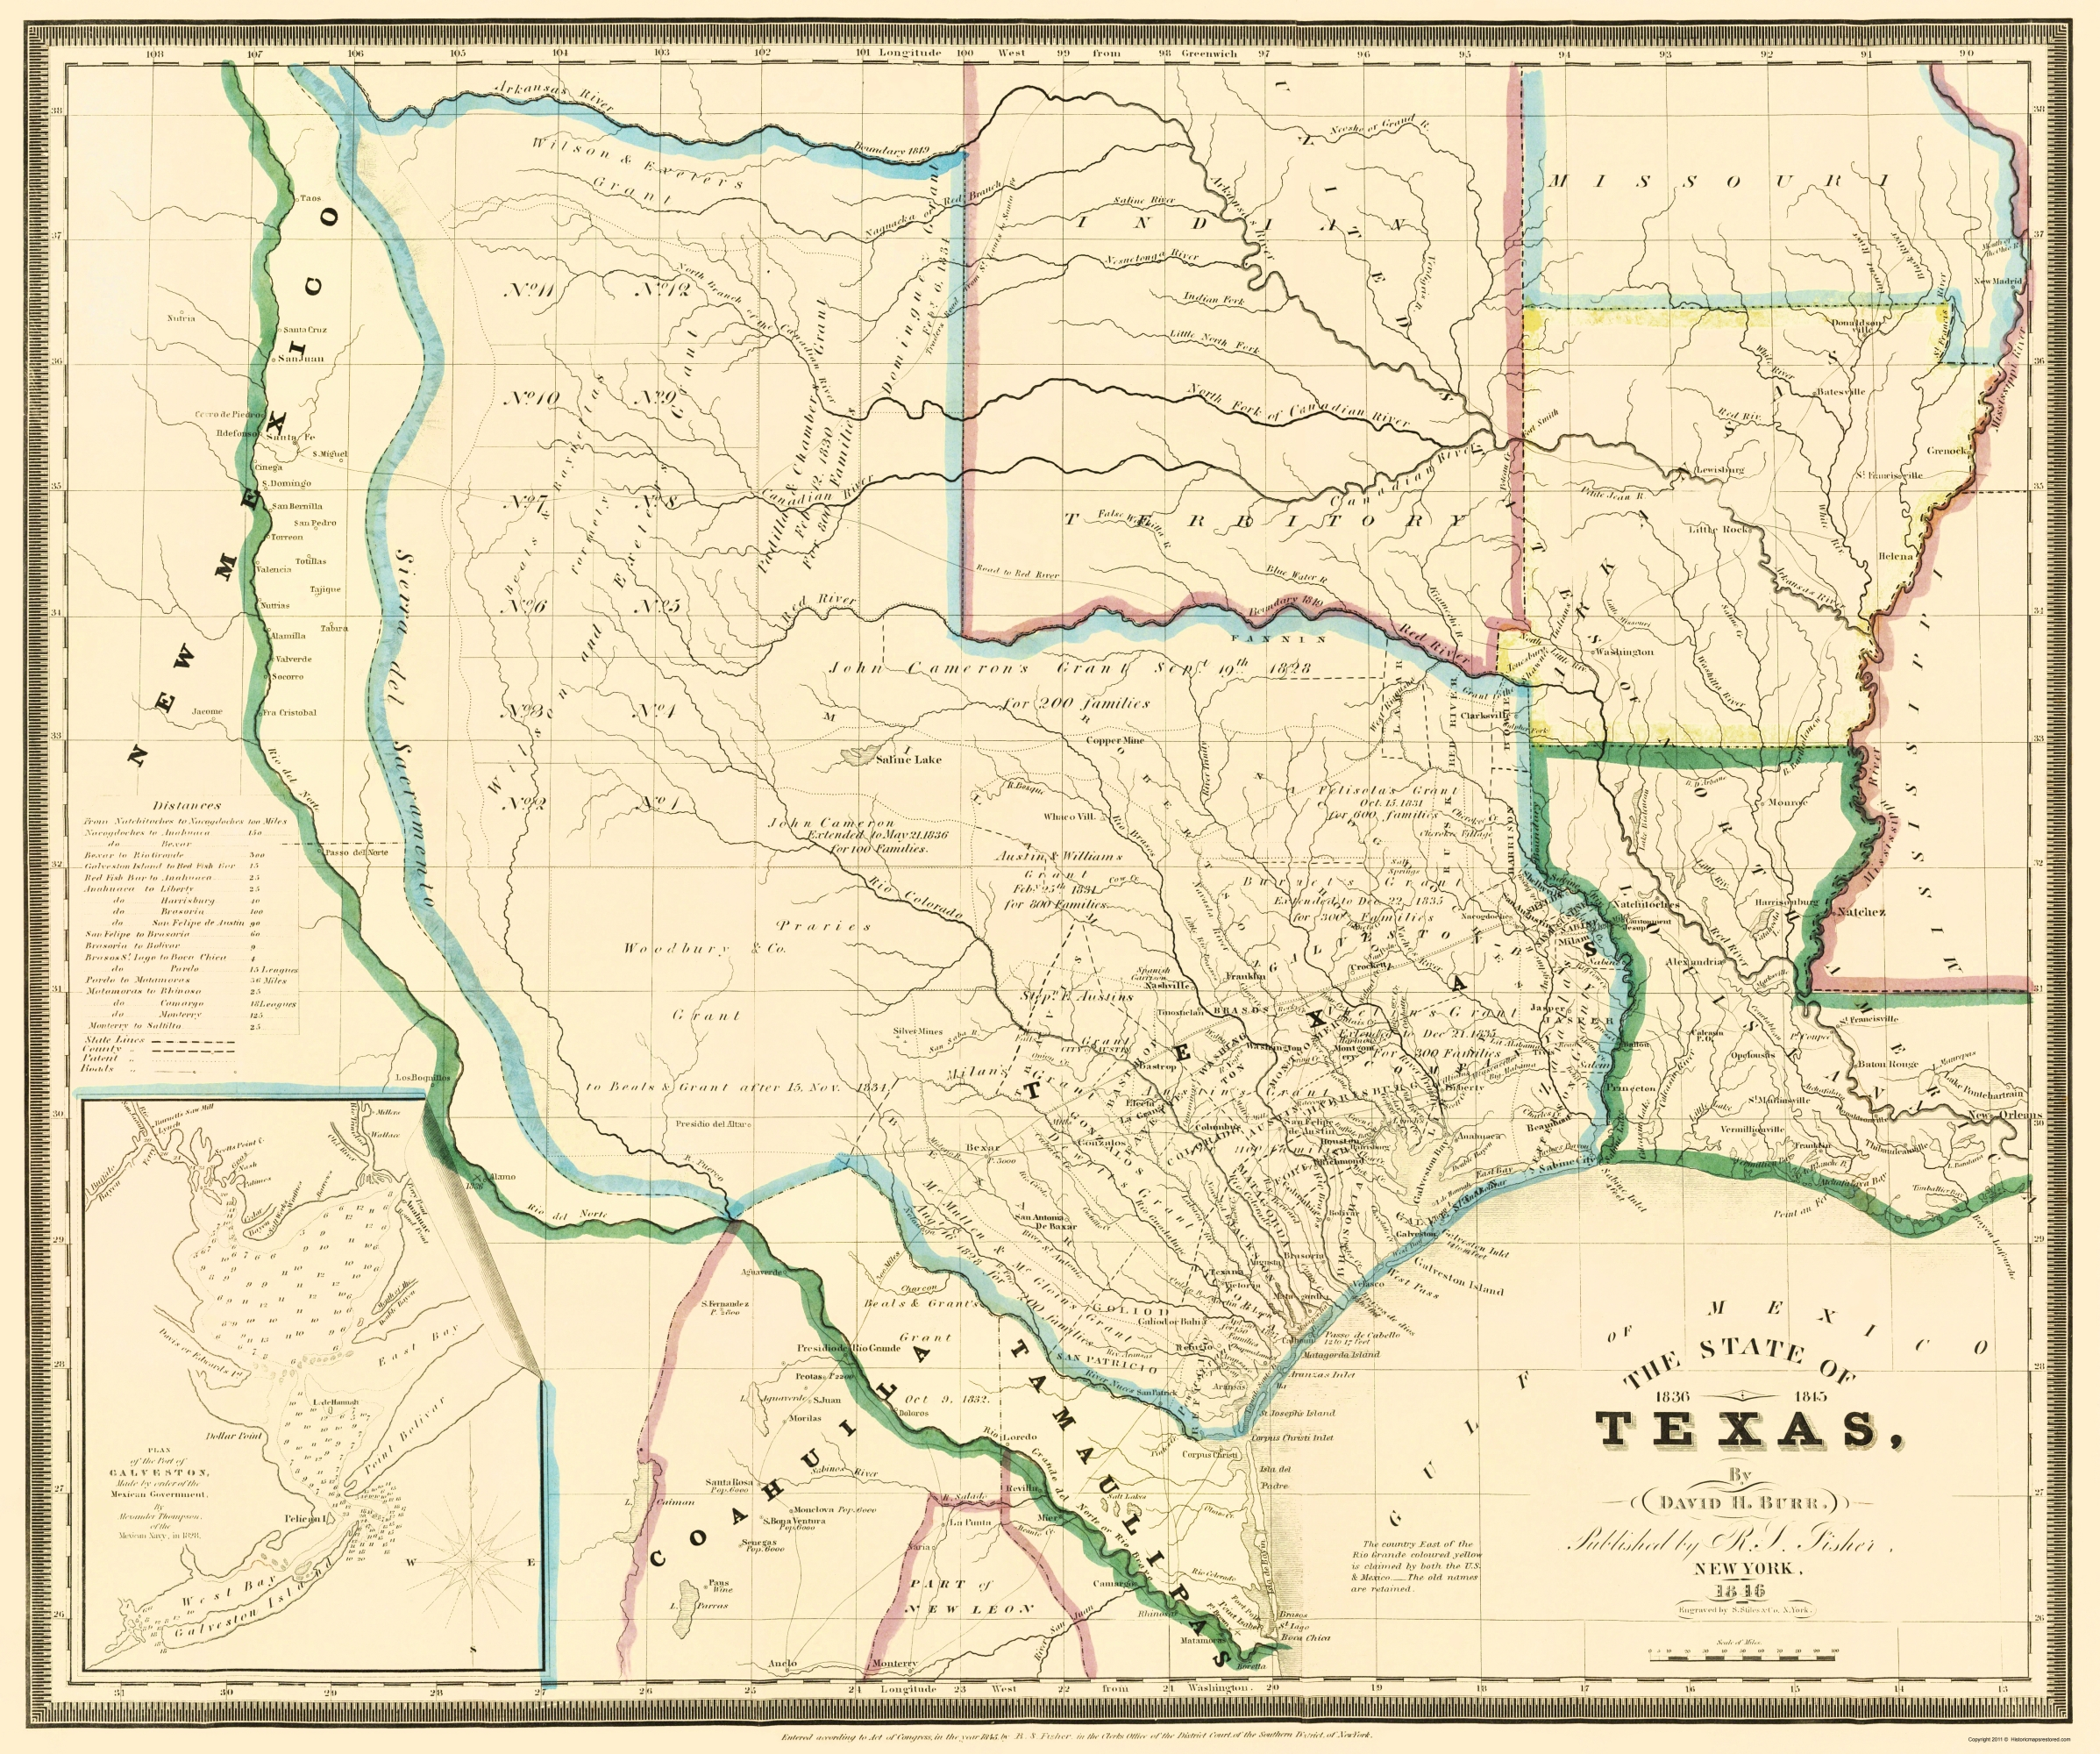 Old State Map Texas Burr - Map of colorado river in texas